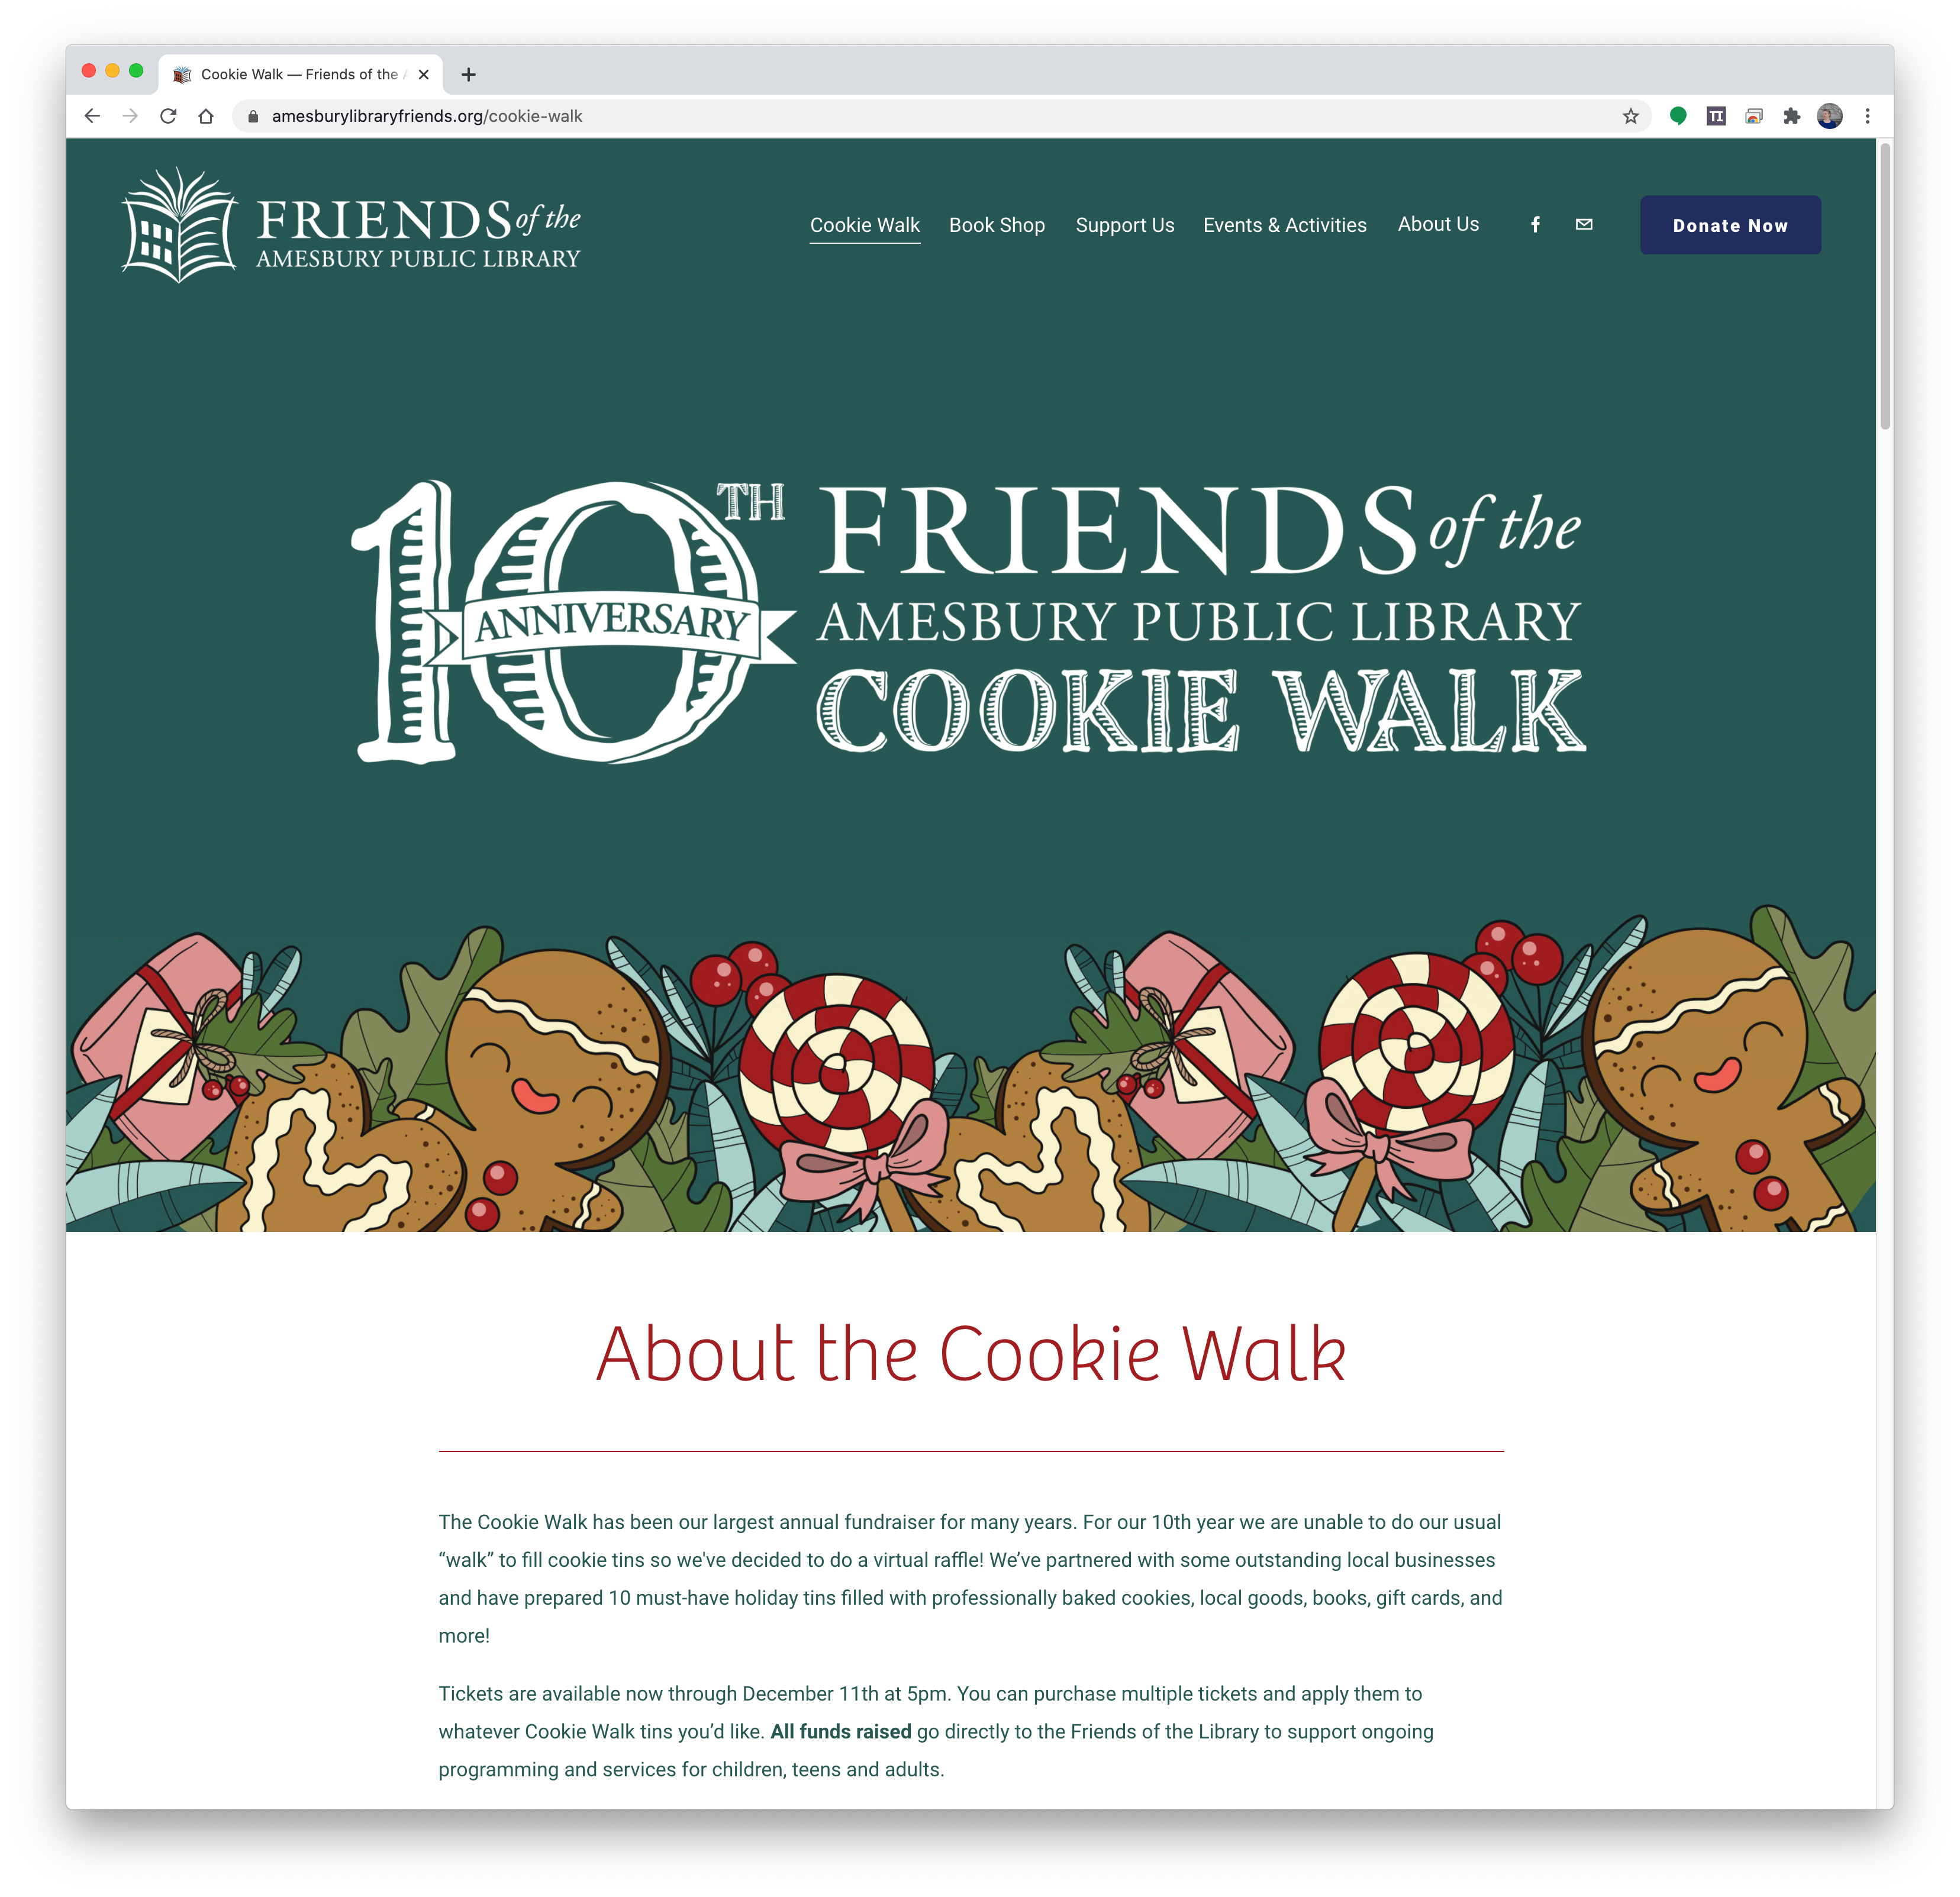 Cookie Walk fundraising page for FRIENDS OF THE AMESBURY PUBLIC LIBRARY WEBSITE